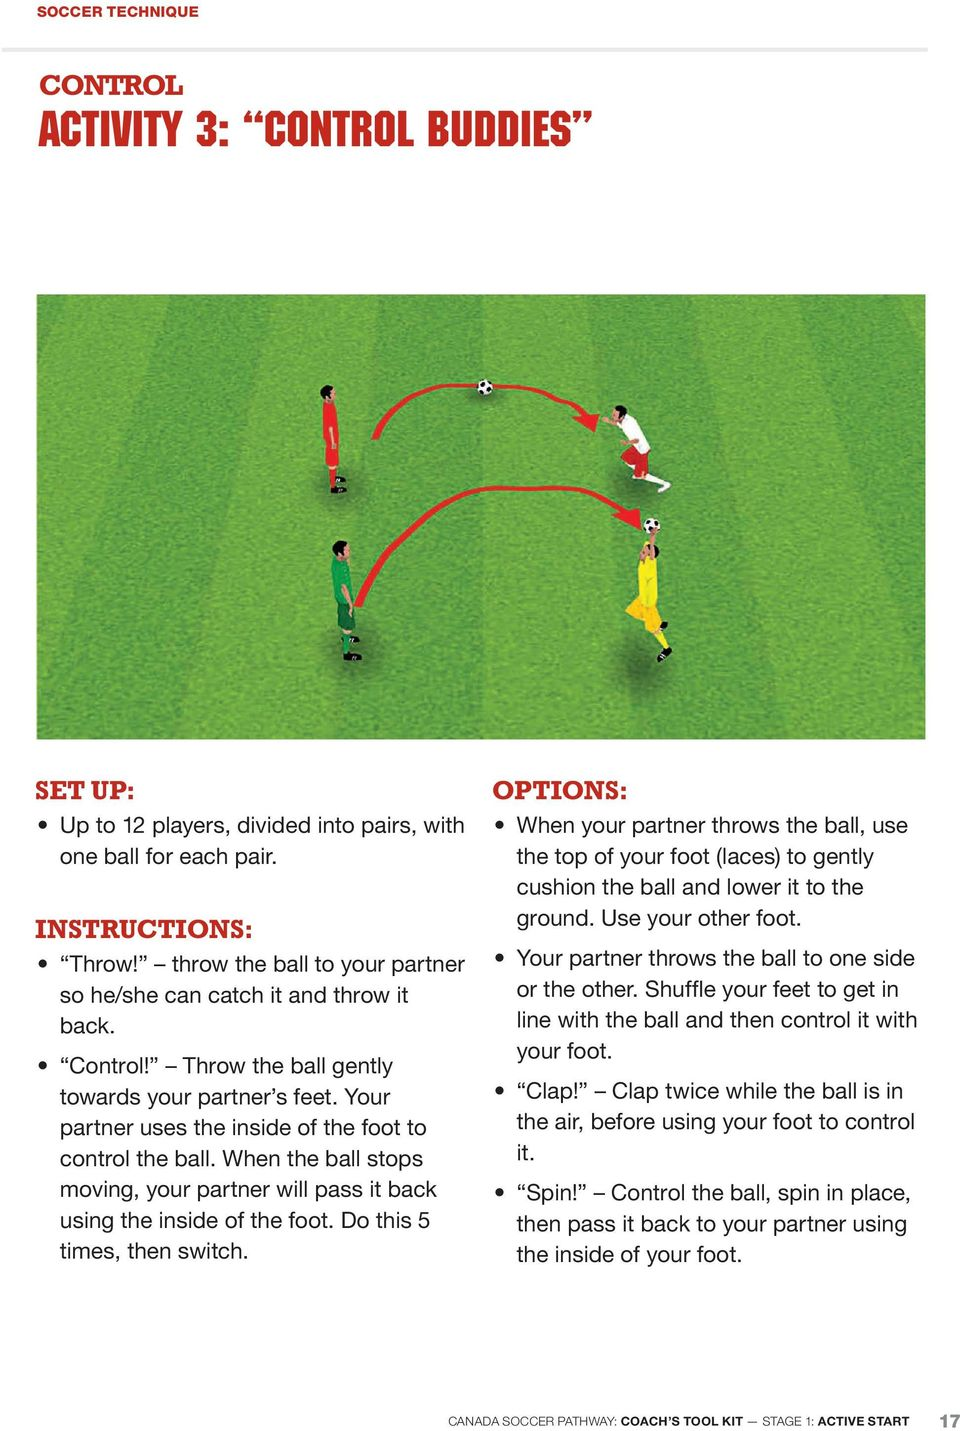 When the ball stops moving, your partner will pass it back using the inside of the foot. Do this 5 times, then switch.